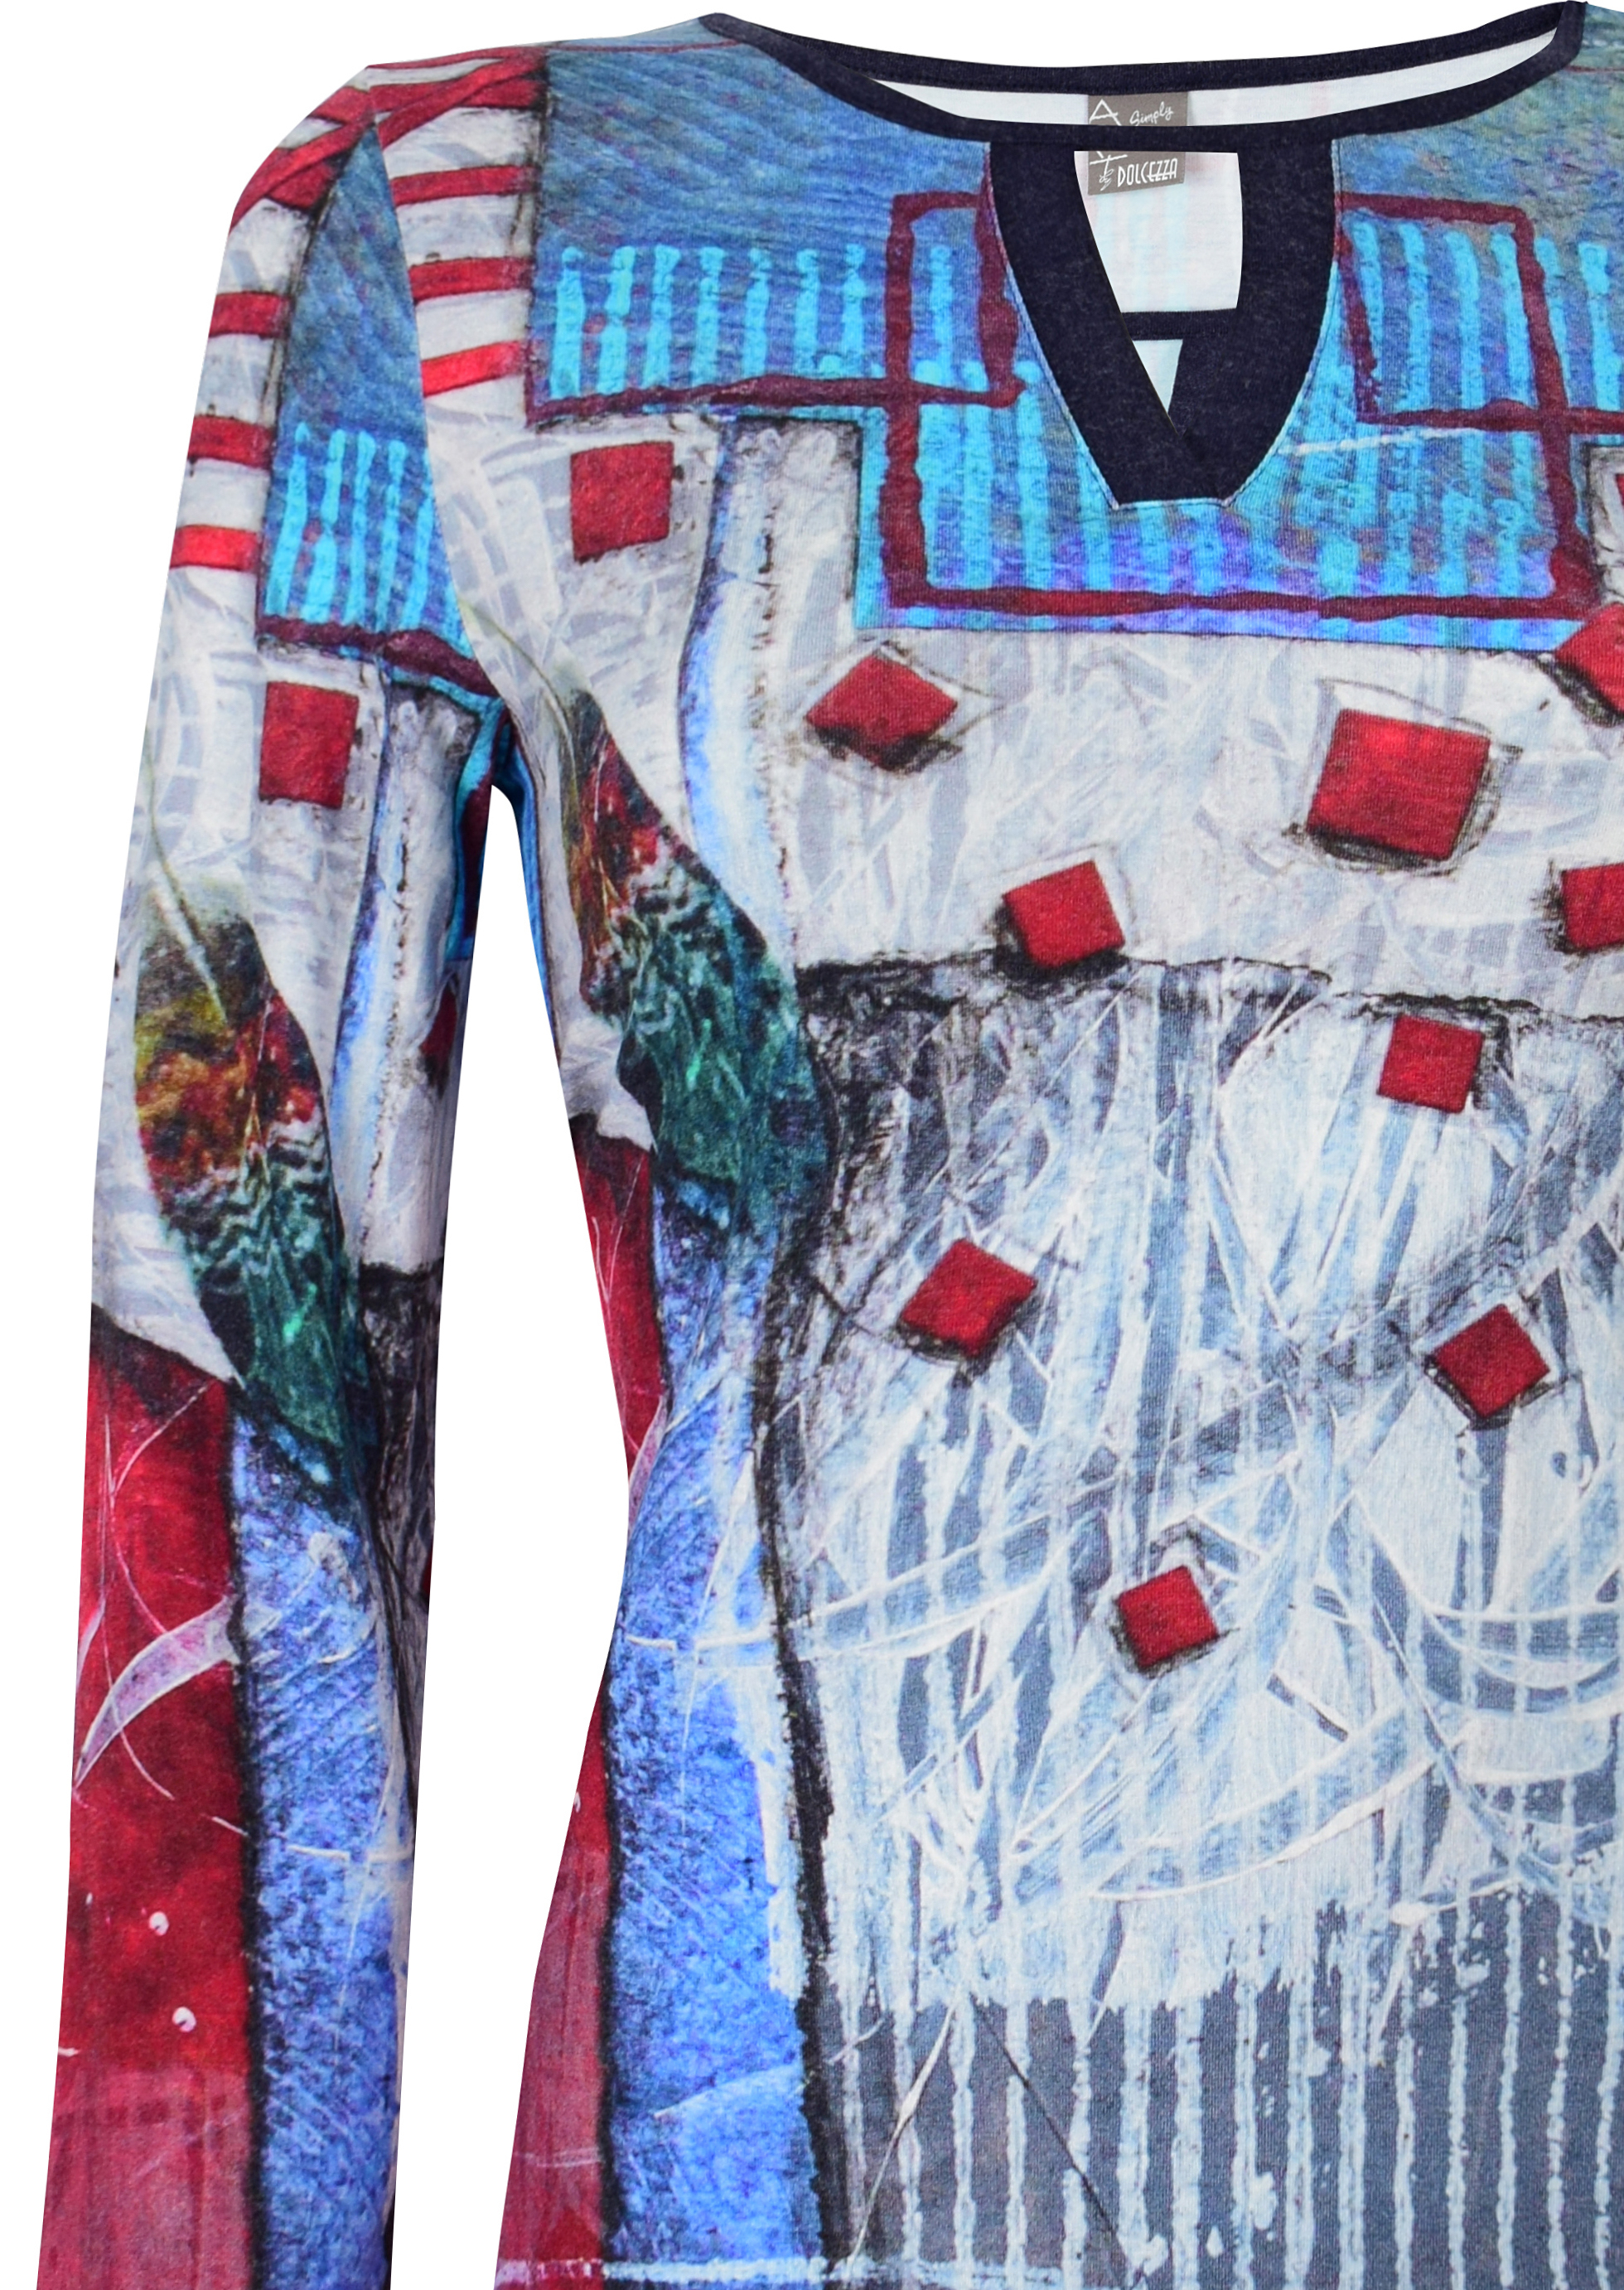 Simply Art Dolcezza: Only Love Spiritually Square Abstract Art Tunic